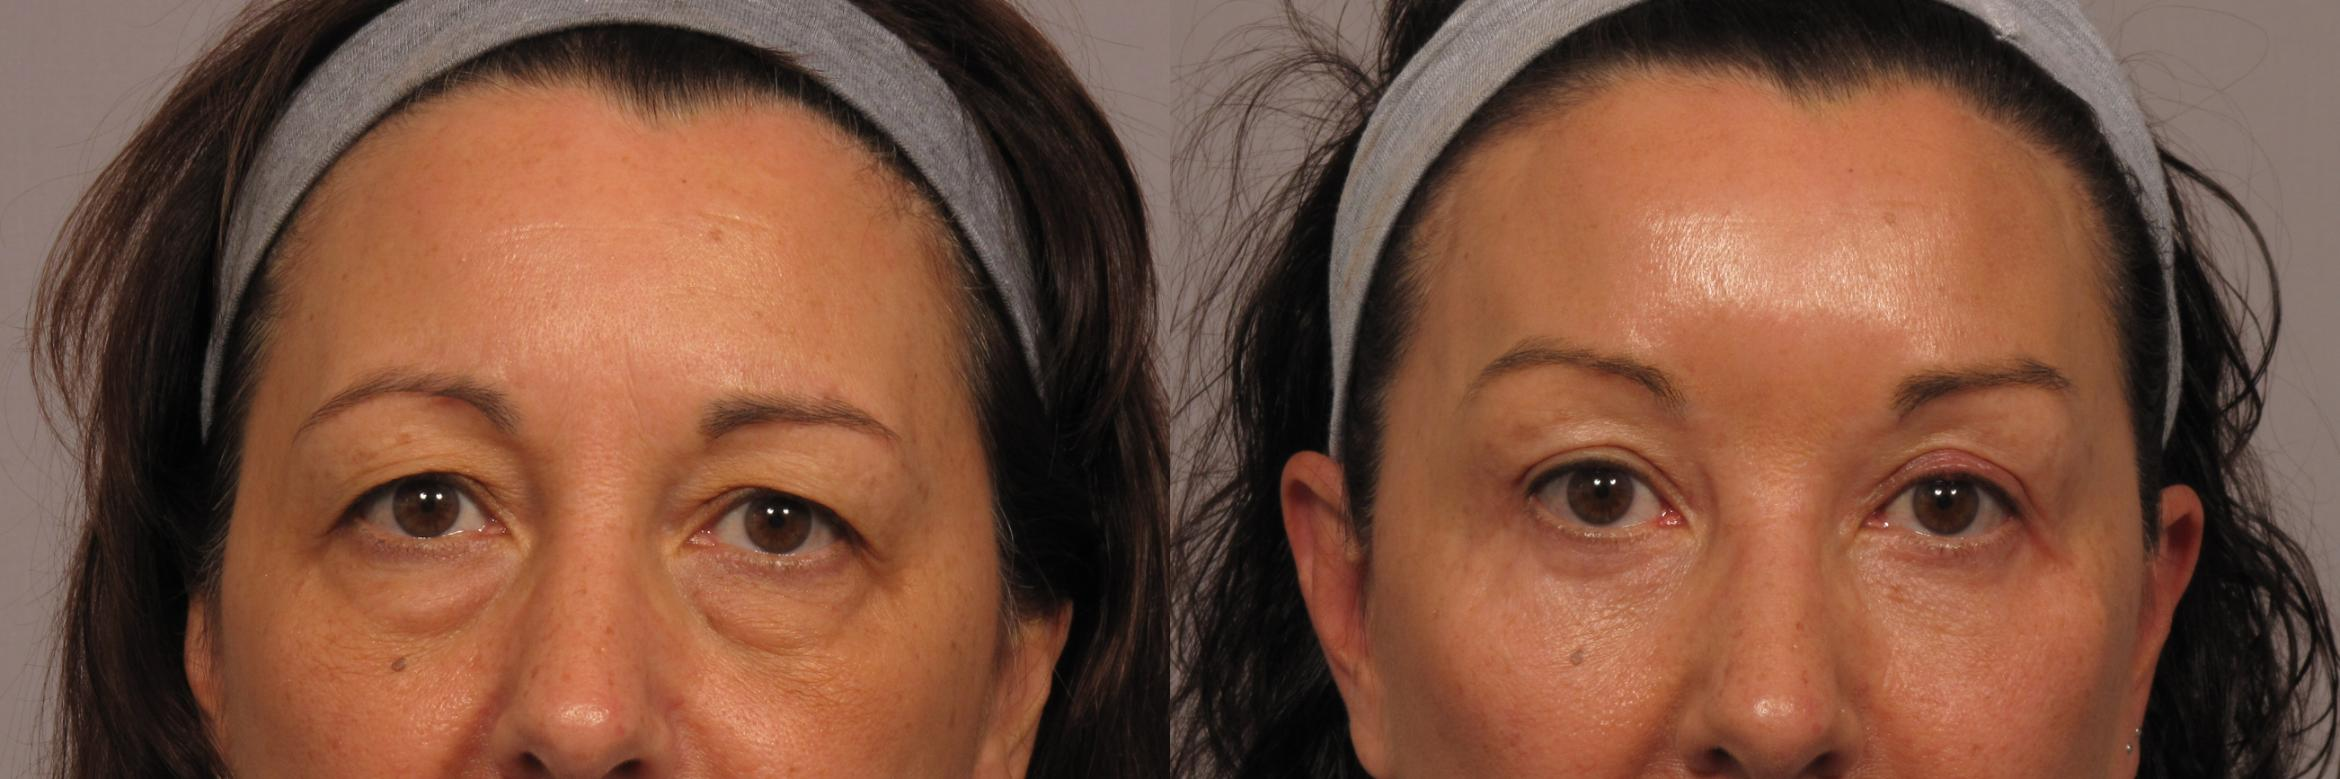 Front View of Patient who underwent eyelid lift and brow lift